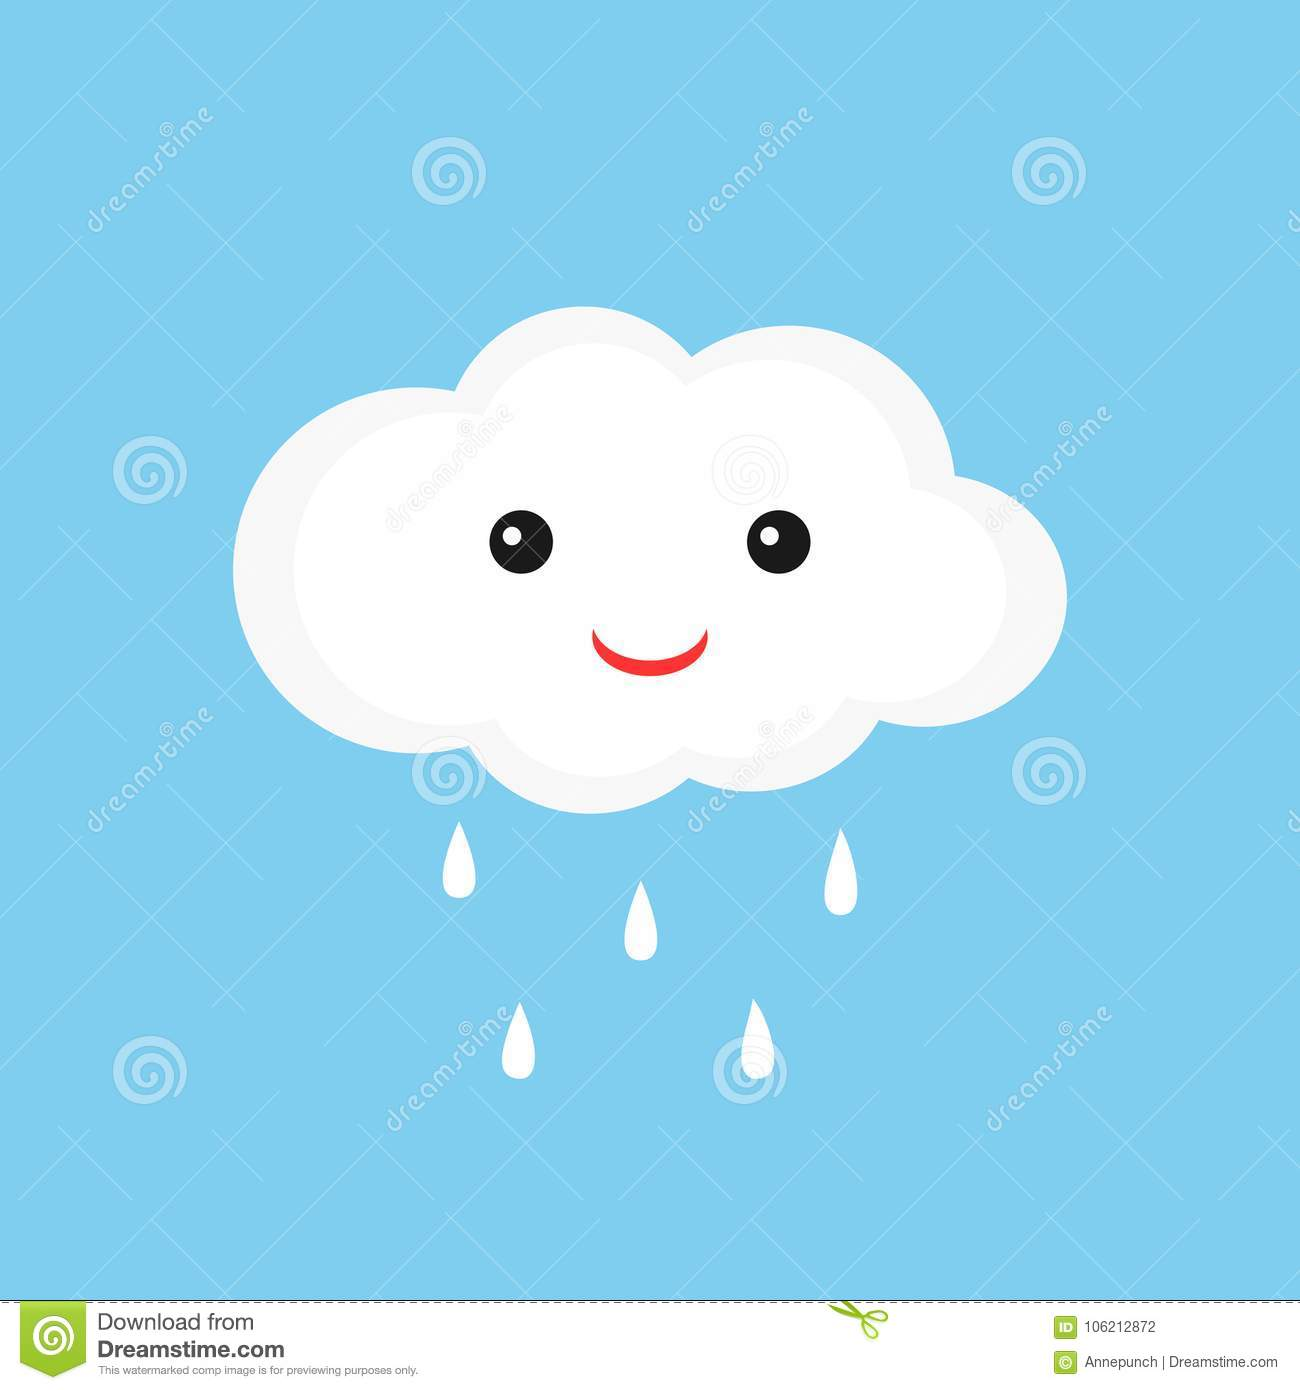 Cute Cloud With Smiley Face And Raindrops Stock Vector